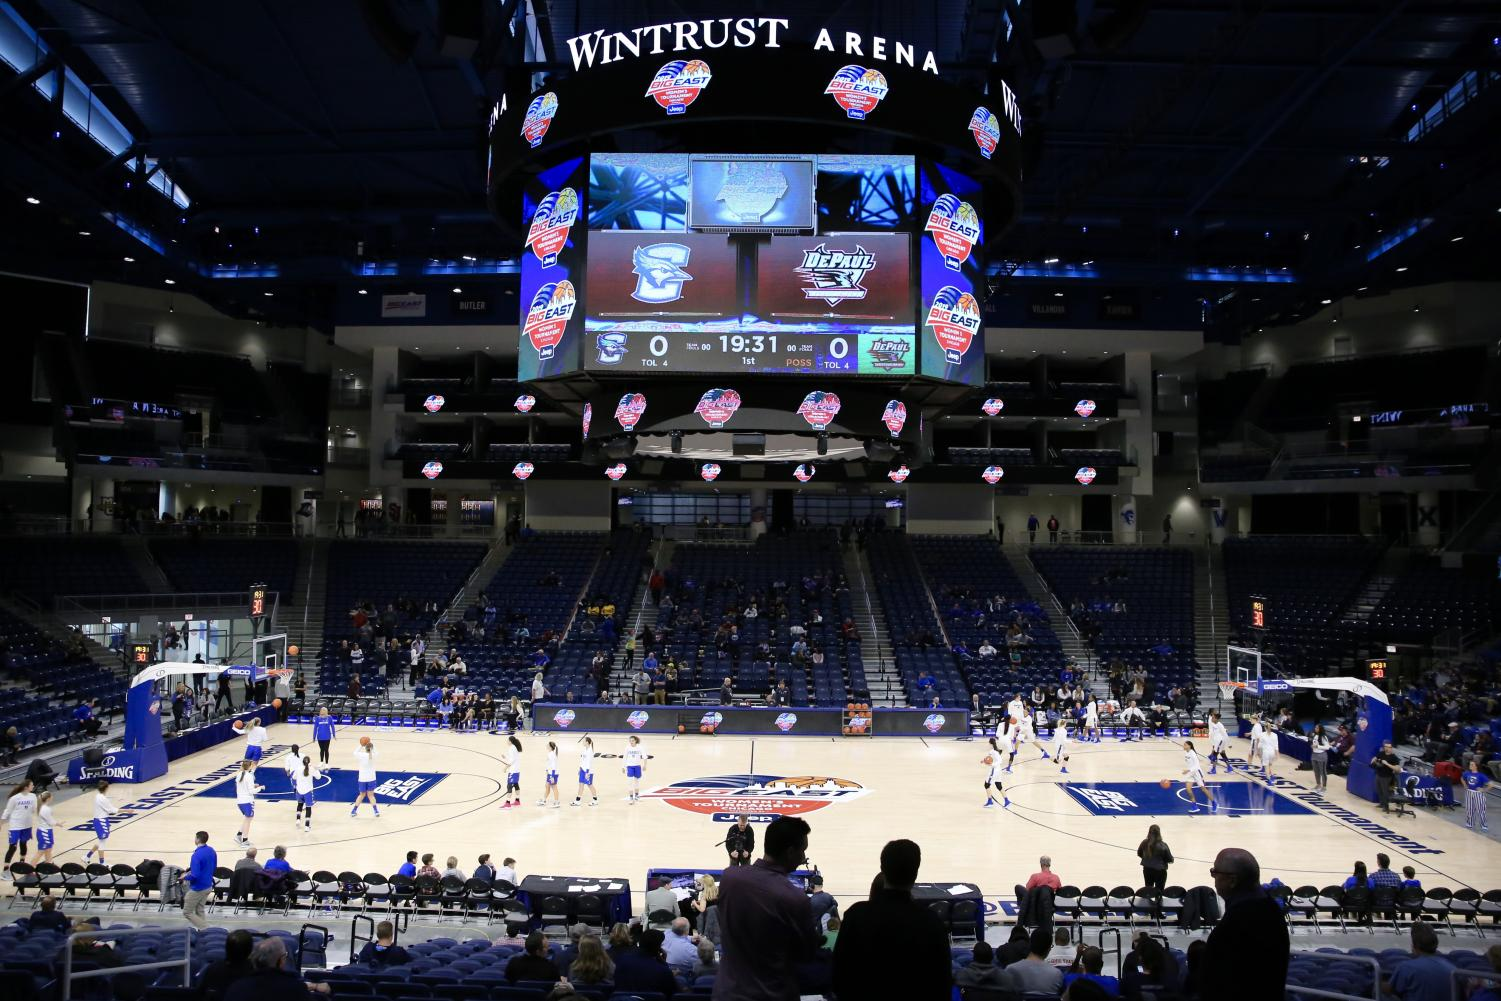 DePaul and Creighton players warm up with just under 20 minutes until gametime Monday night at Wintrust Arena. The Blue Demons won the game 80-69. Alexa Sandler | The DePaulia